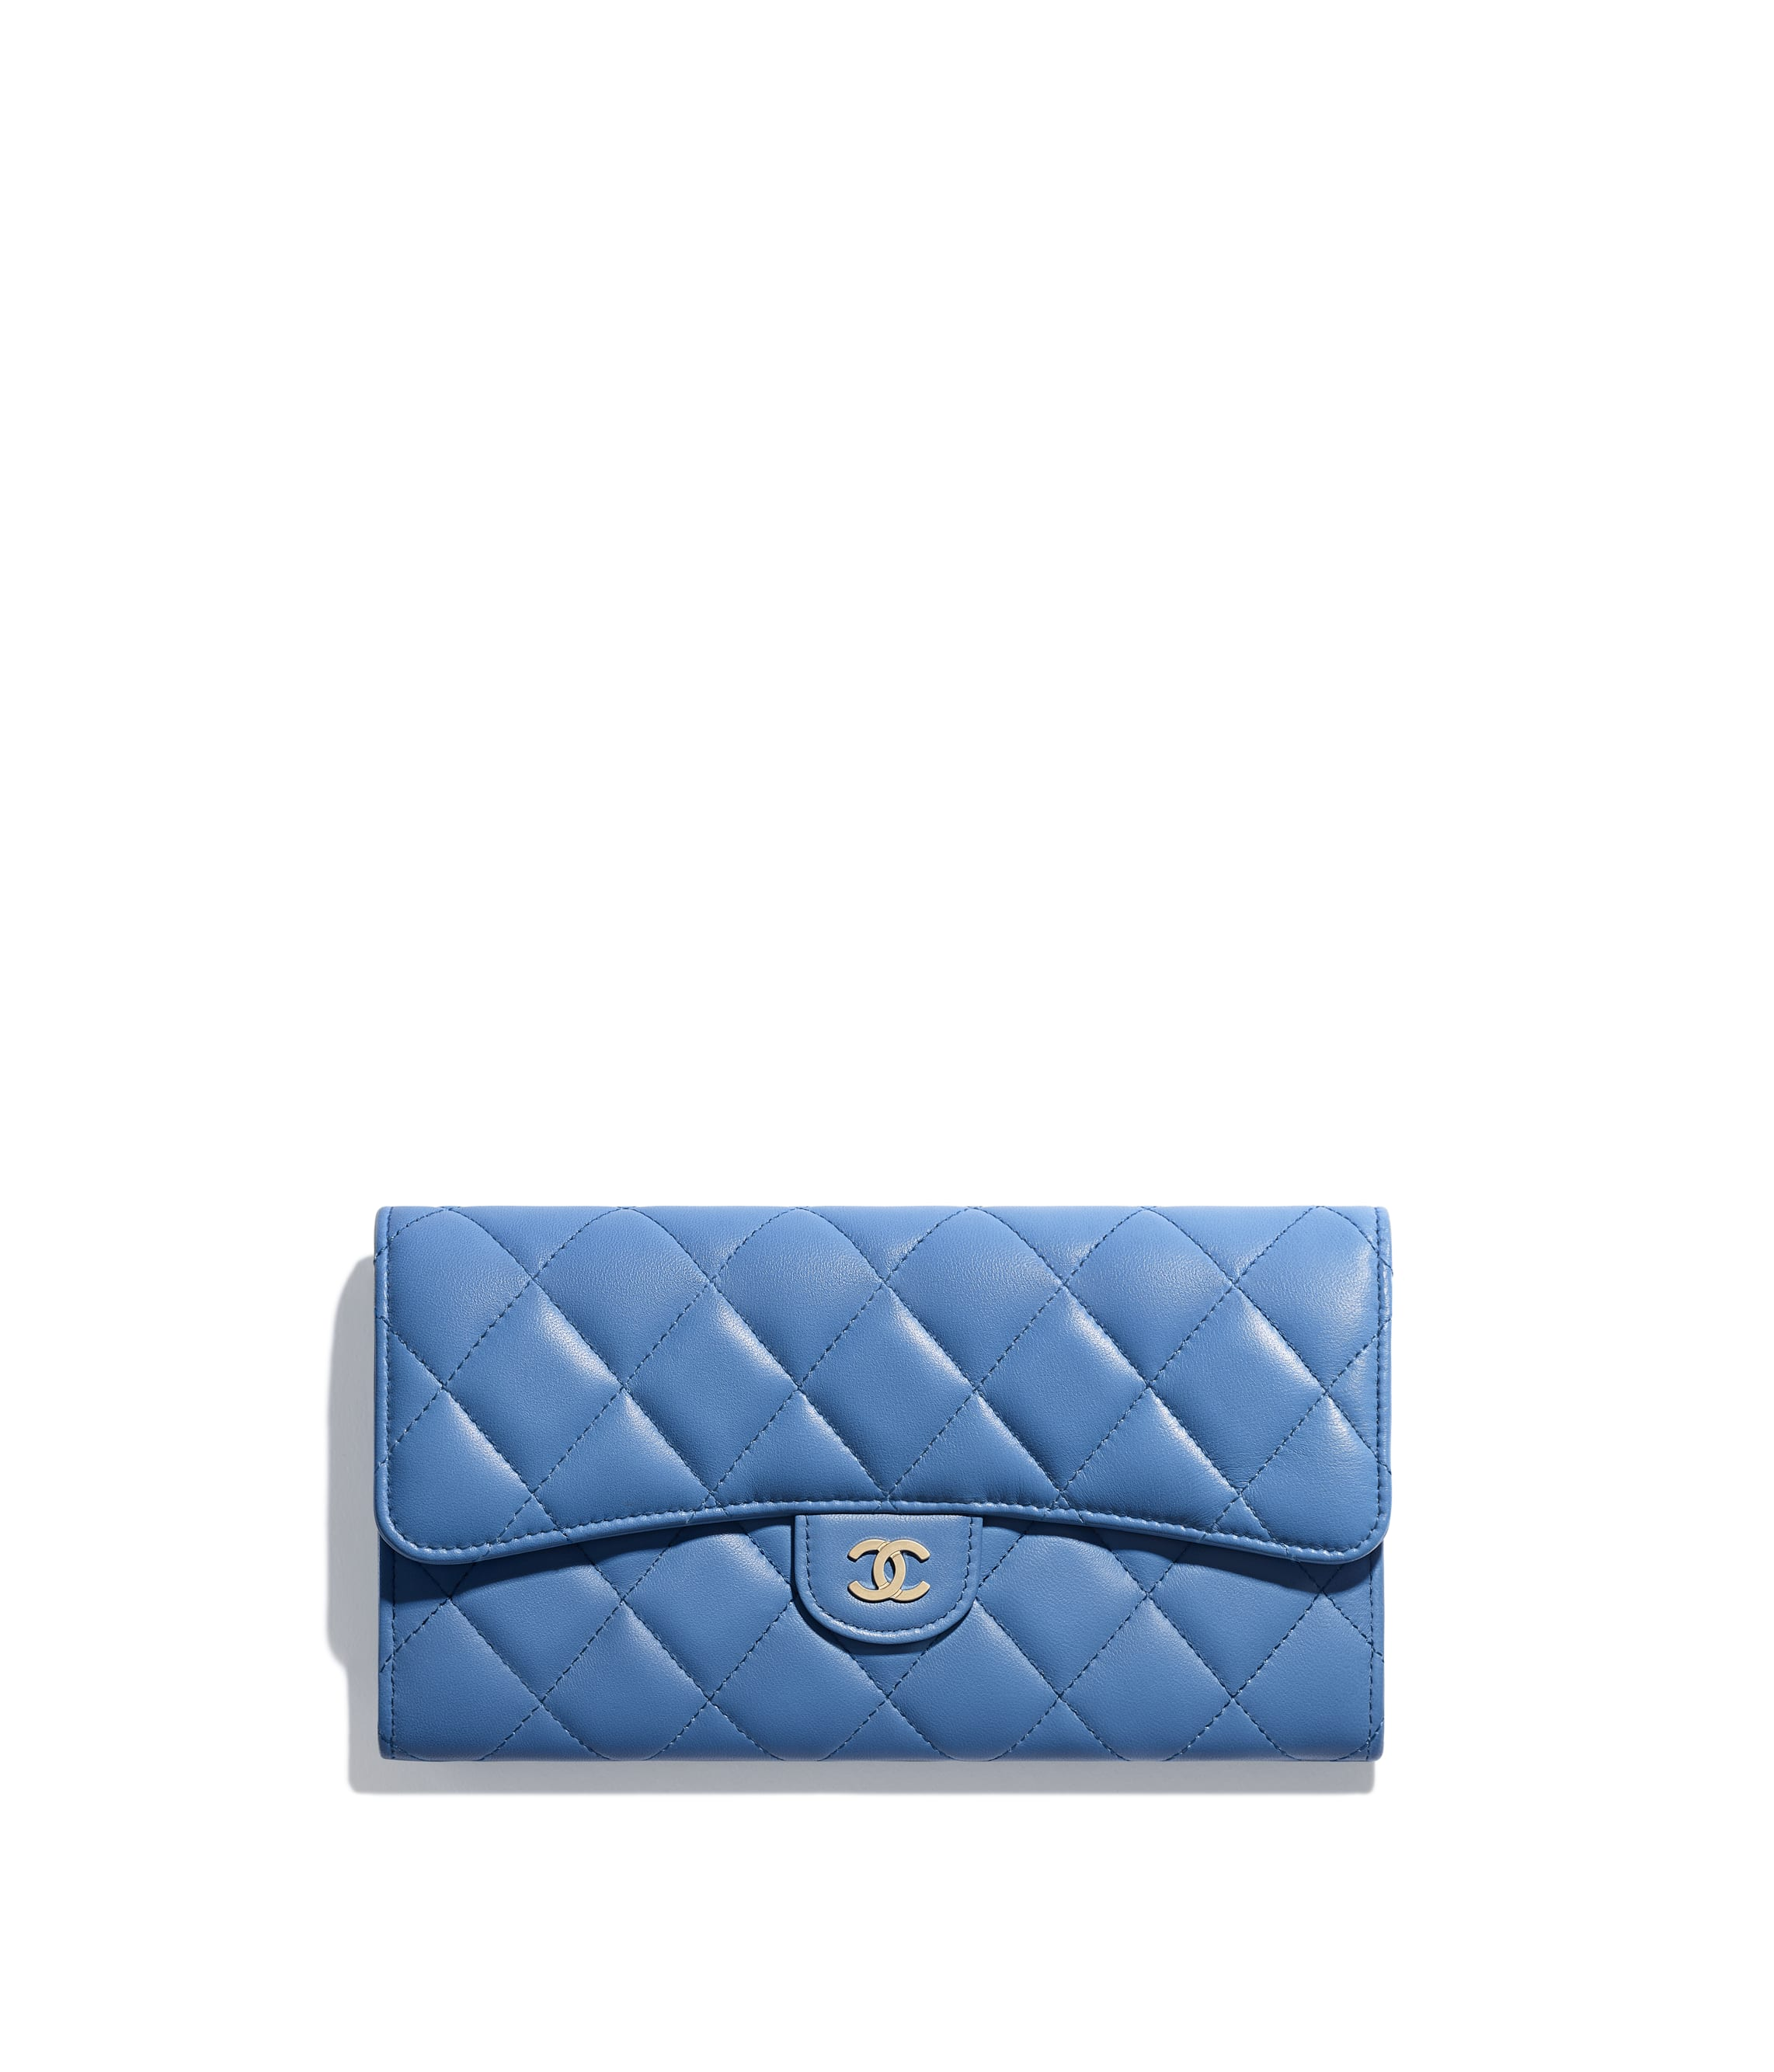 01c55fd34011 Small leather goods - CHANEL